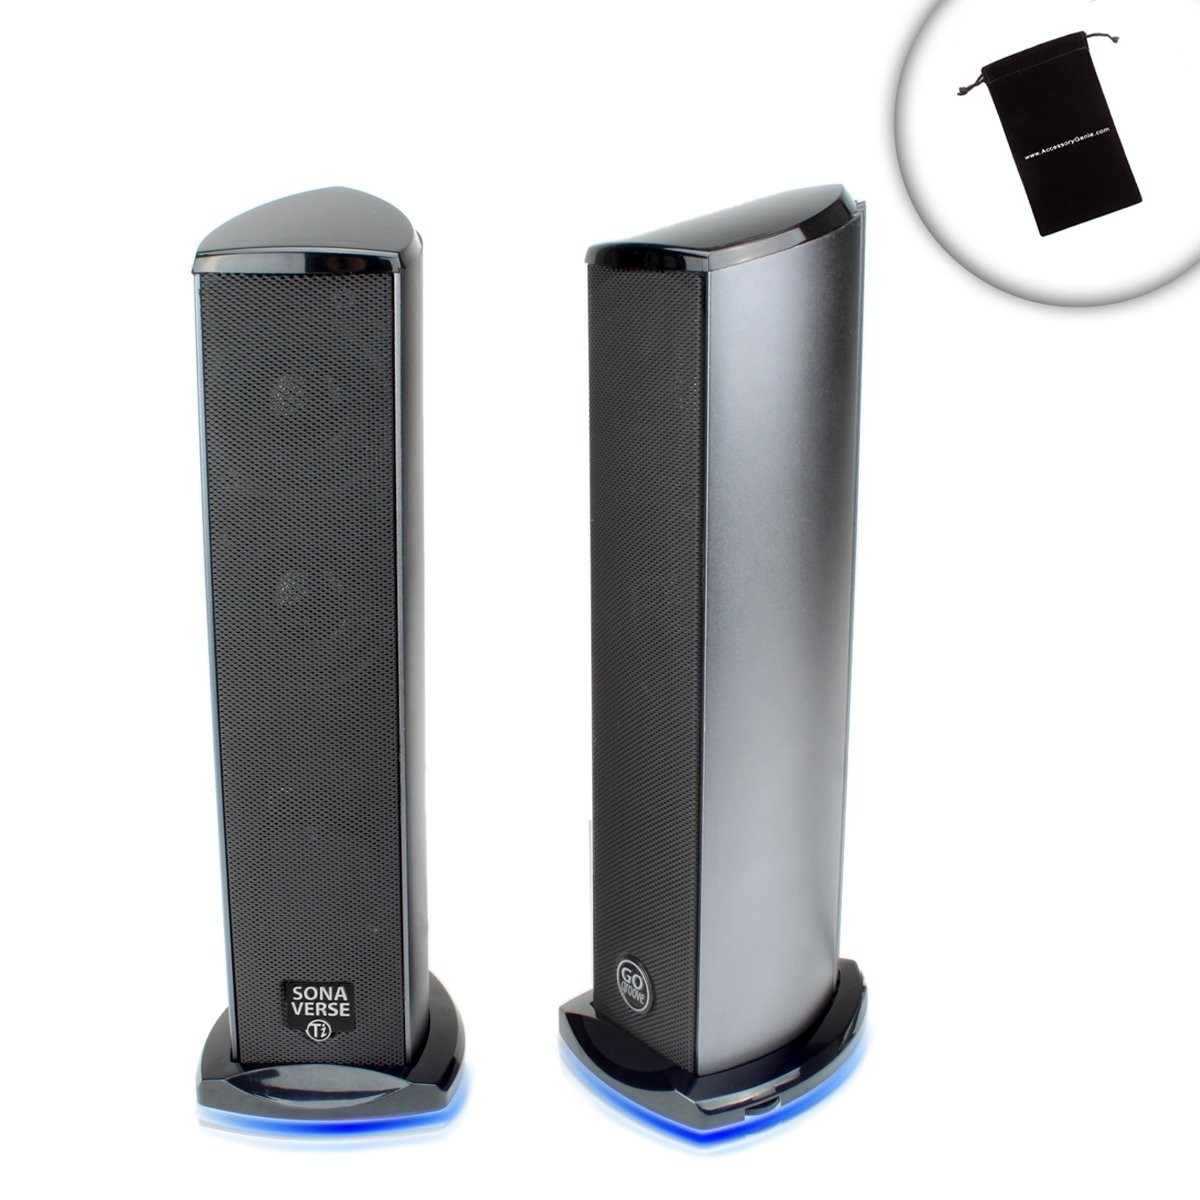 GOgroove USB PC Computer Speakers with Powerful Subwoofer Blue LED Lights and Aluminum Bodies